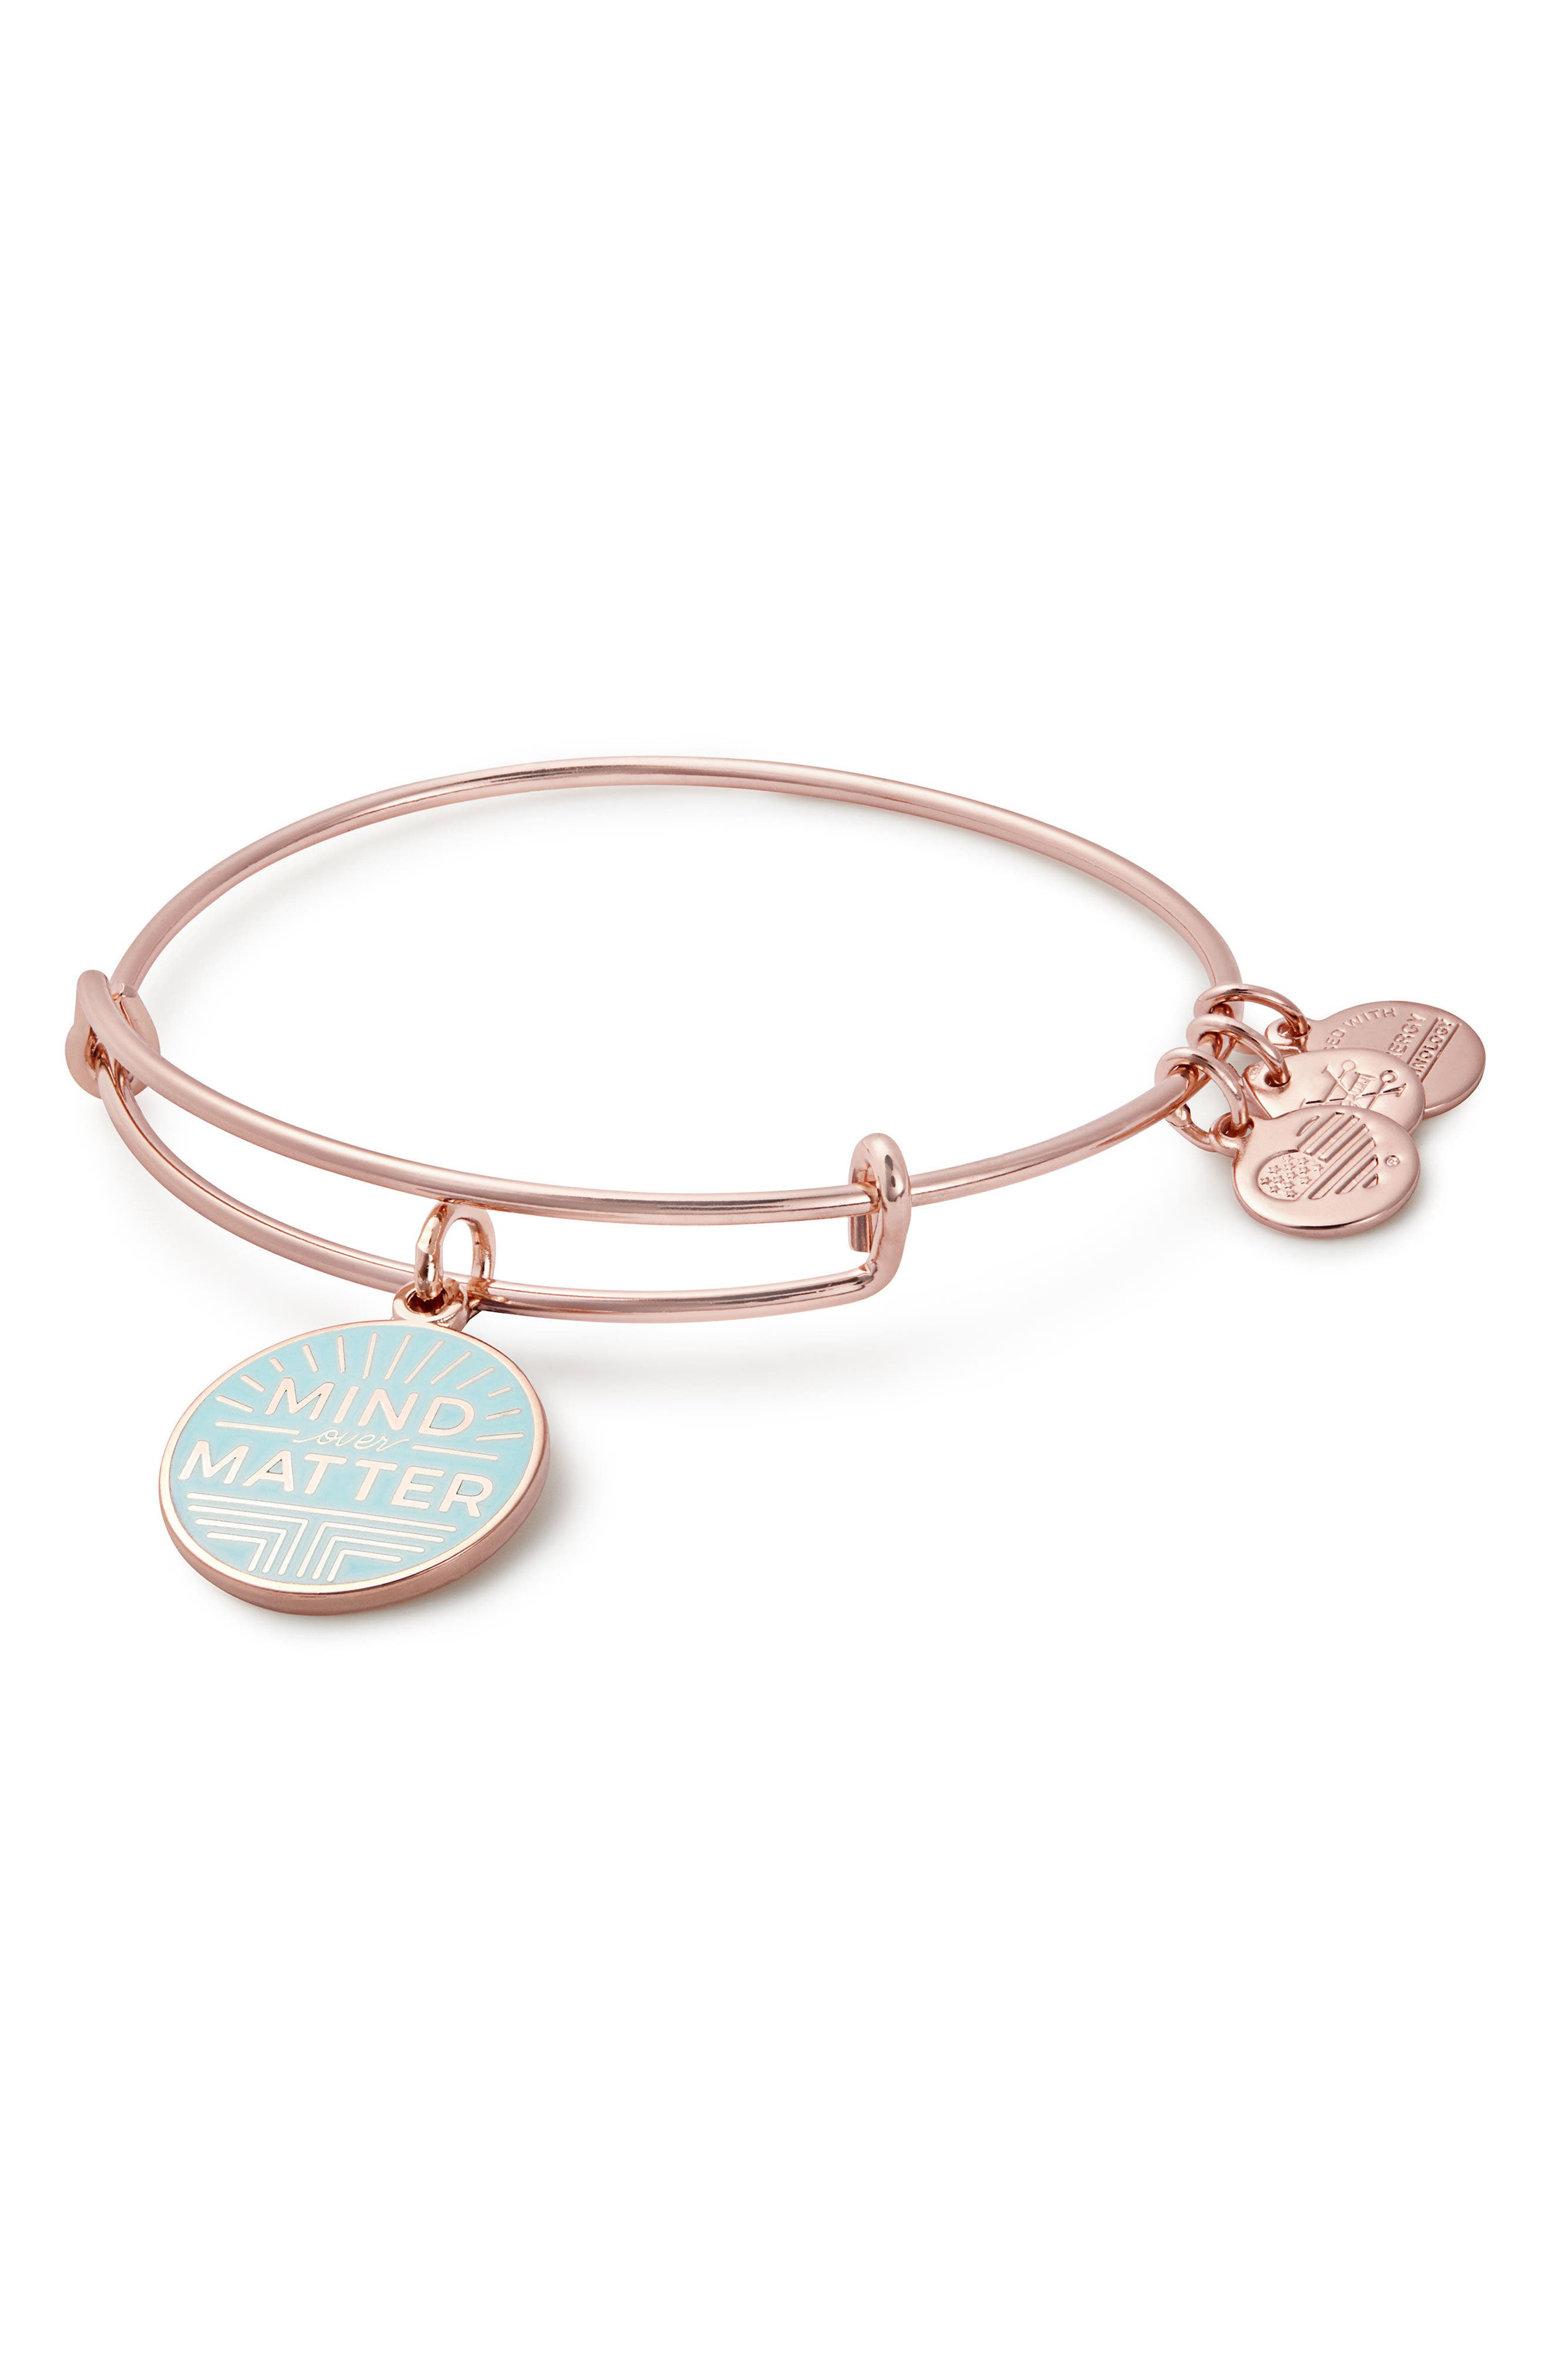 Mind over Matter Expandable Charm Bangle,                         Main,                         color, 650